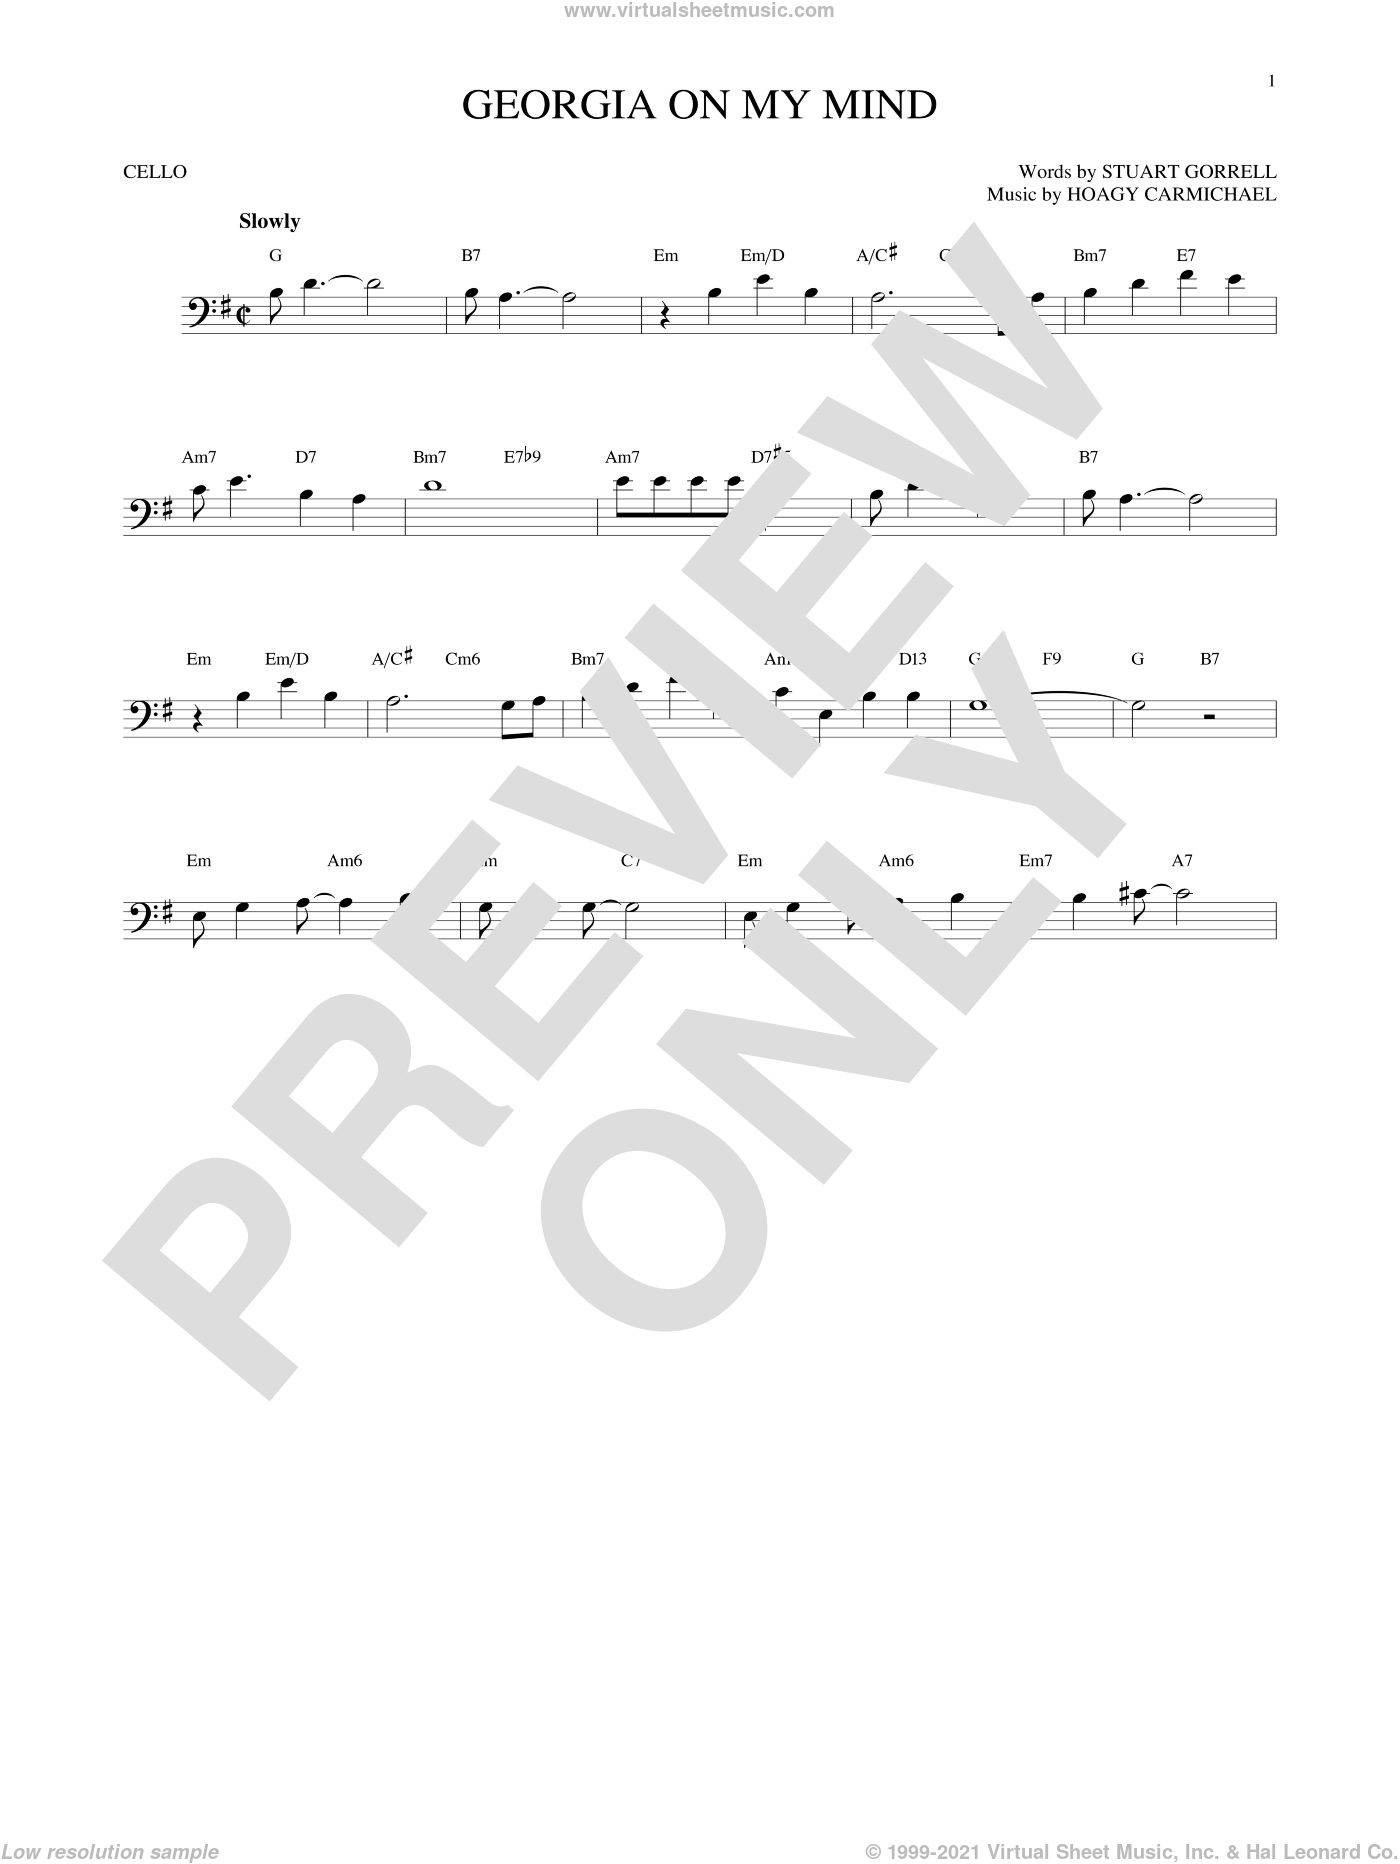 Georgia On My Mind sheet music for cello solo by Hoagy Carmichael, Ray Charles, Willie Nelson and Stuart Gorrell. Score Image Preview.